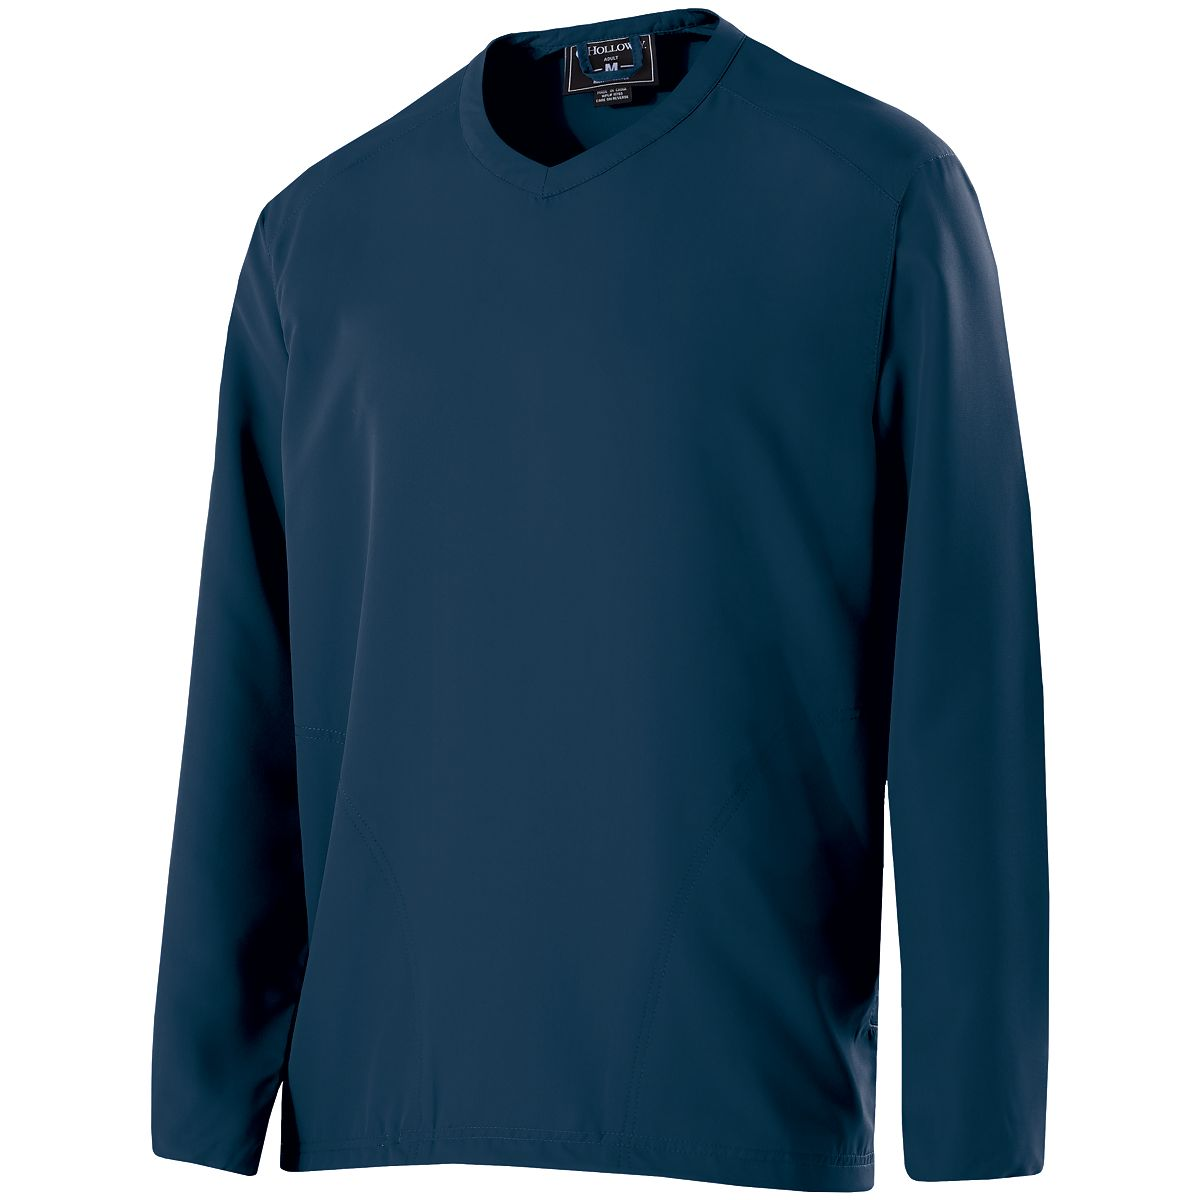 Holloway Ignition Pullover Navy Xs - image 1 of 1